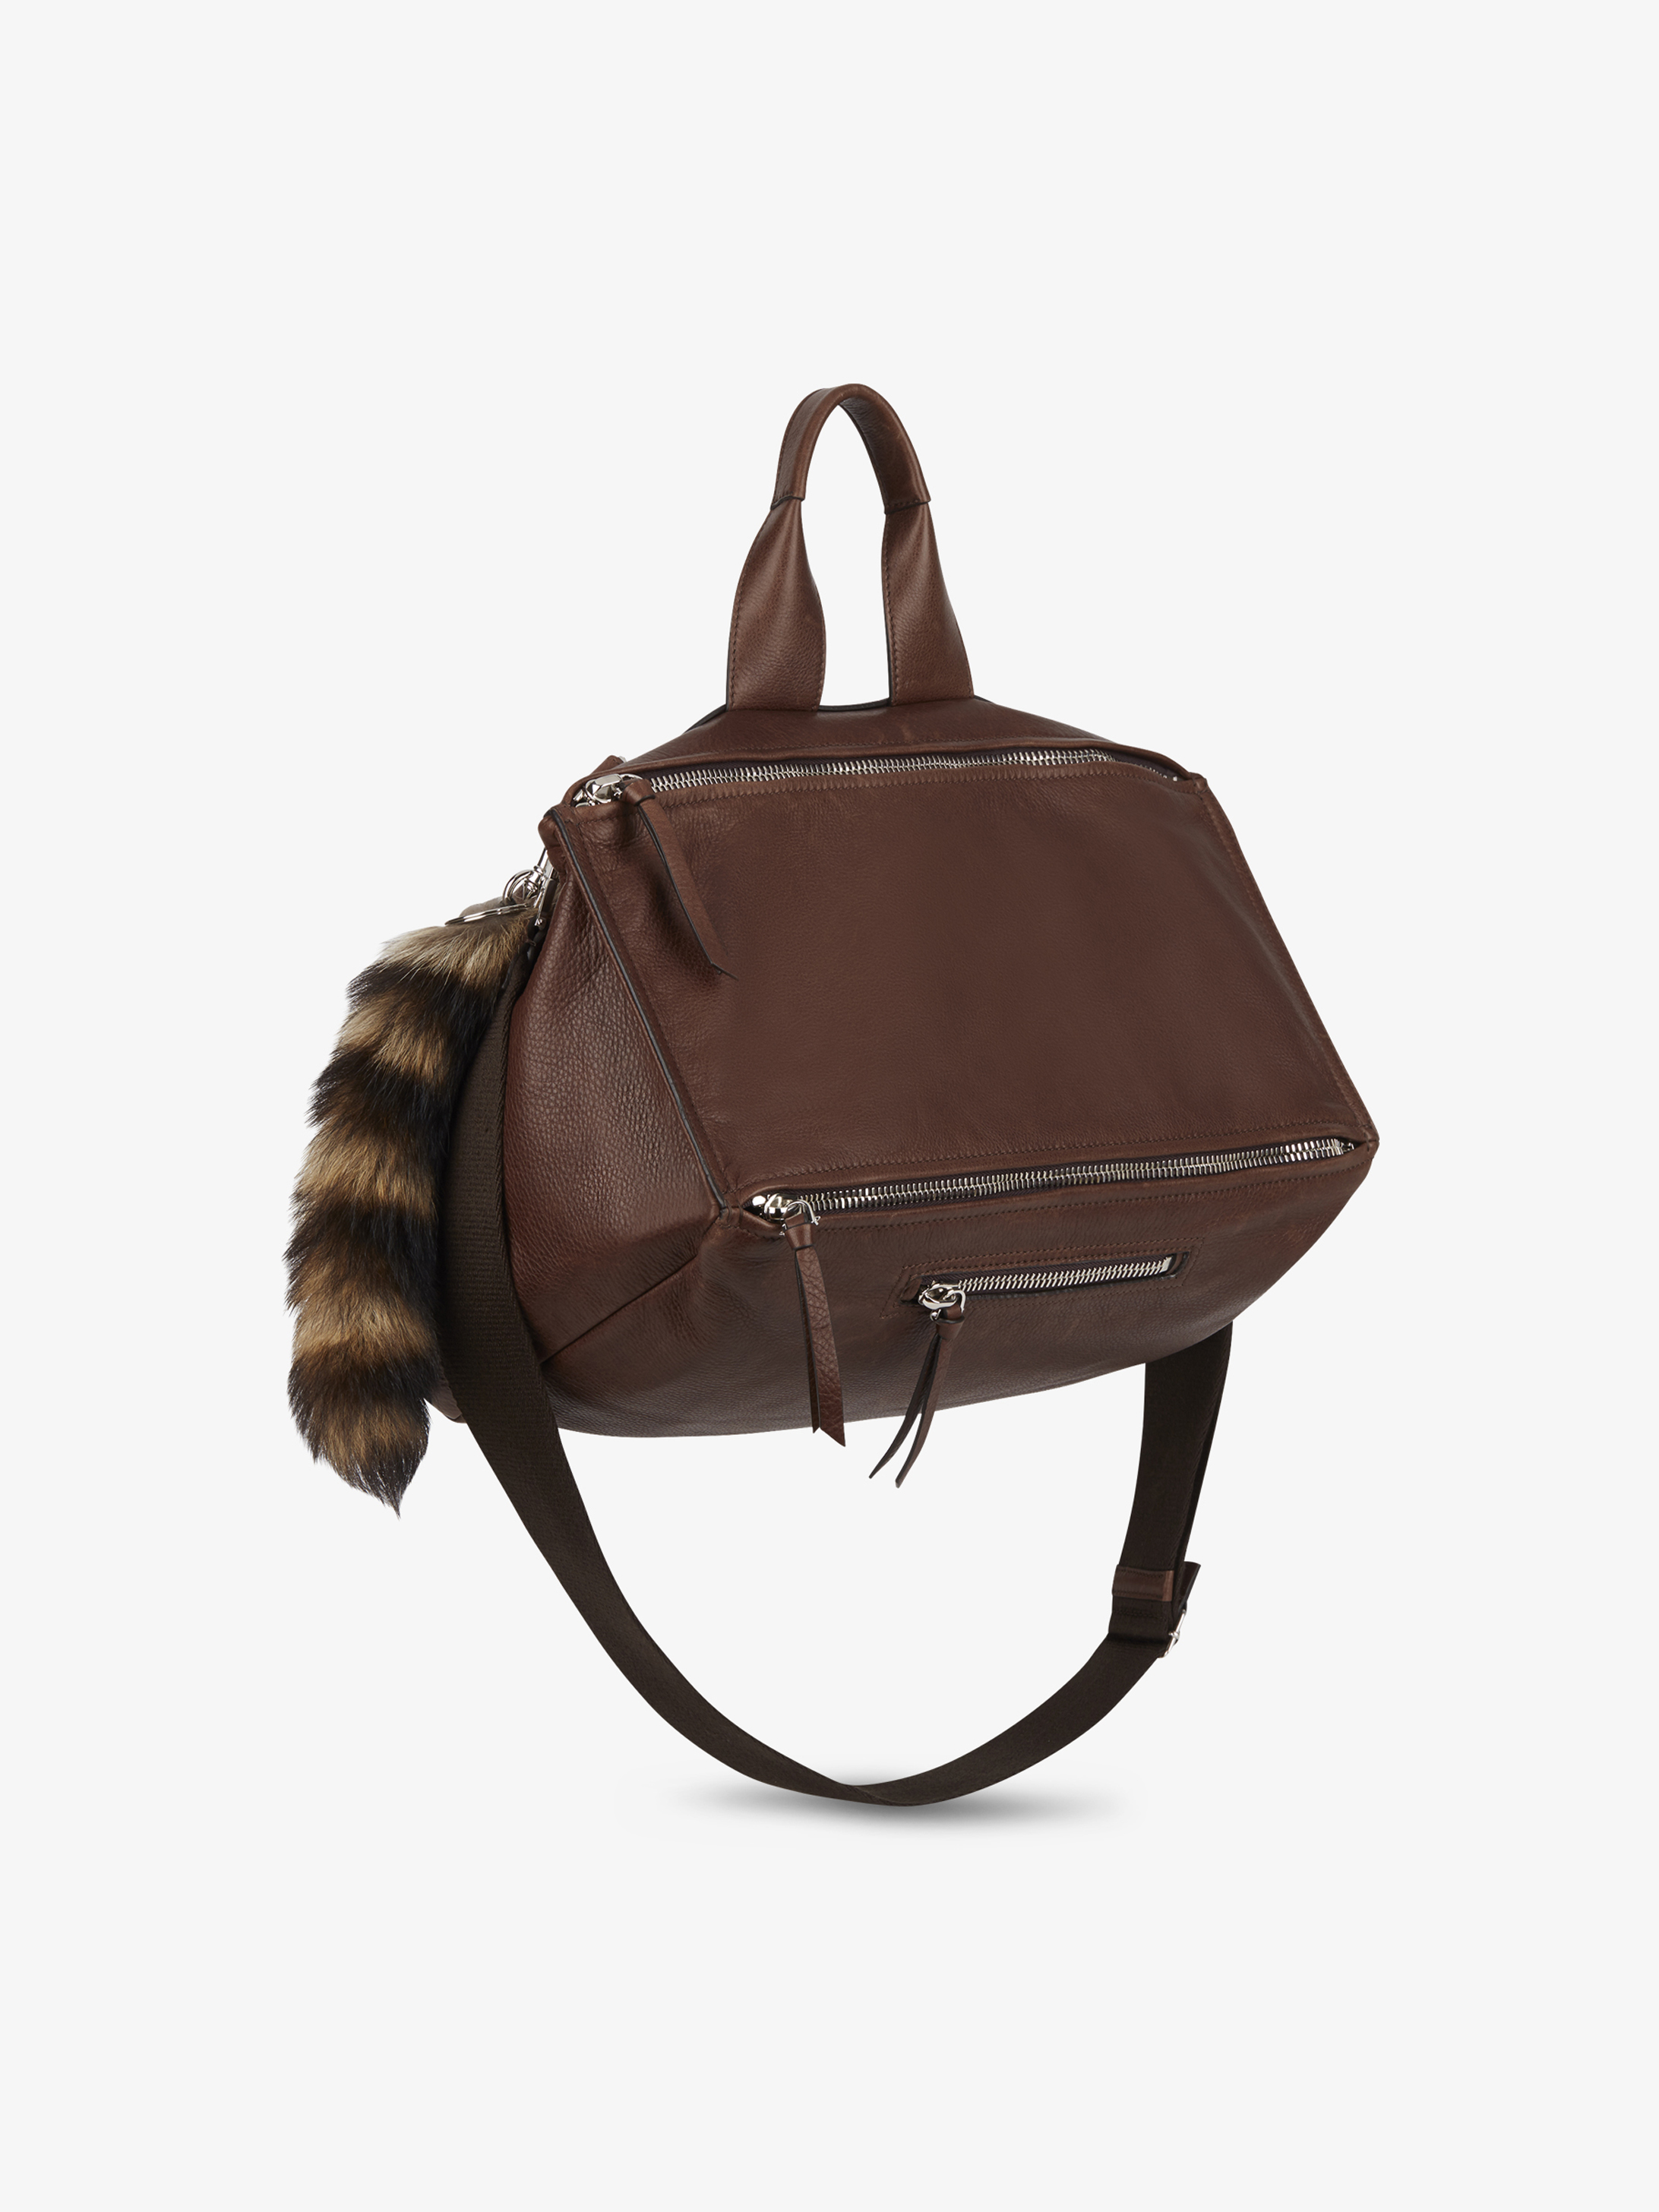 Pandora Messenger bag in leather with fur tail